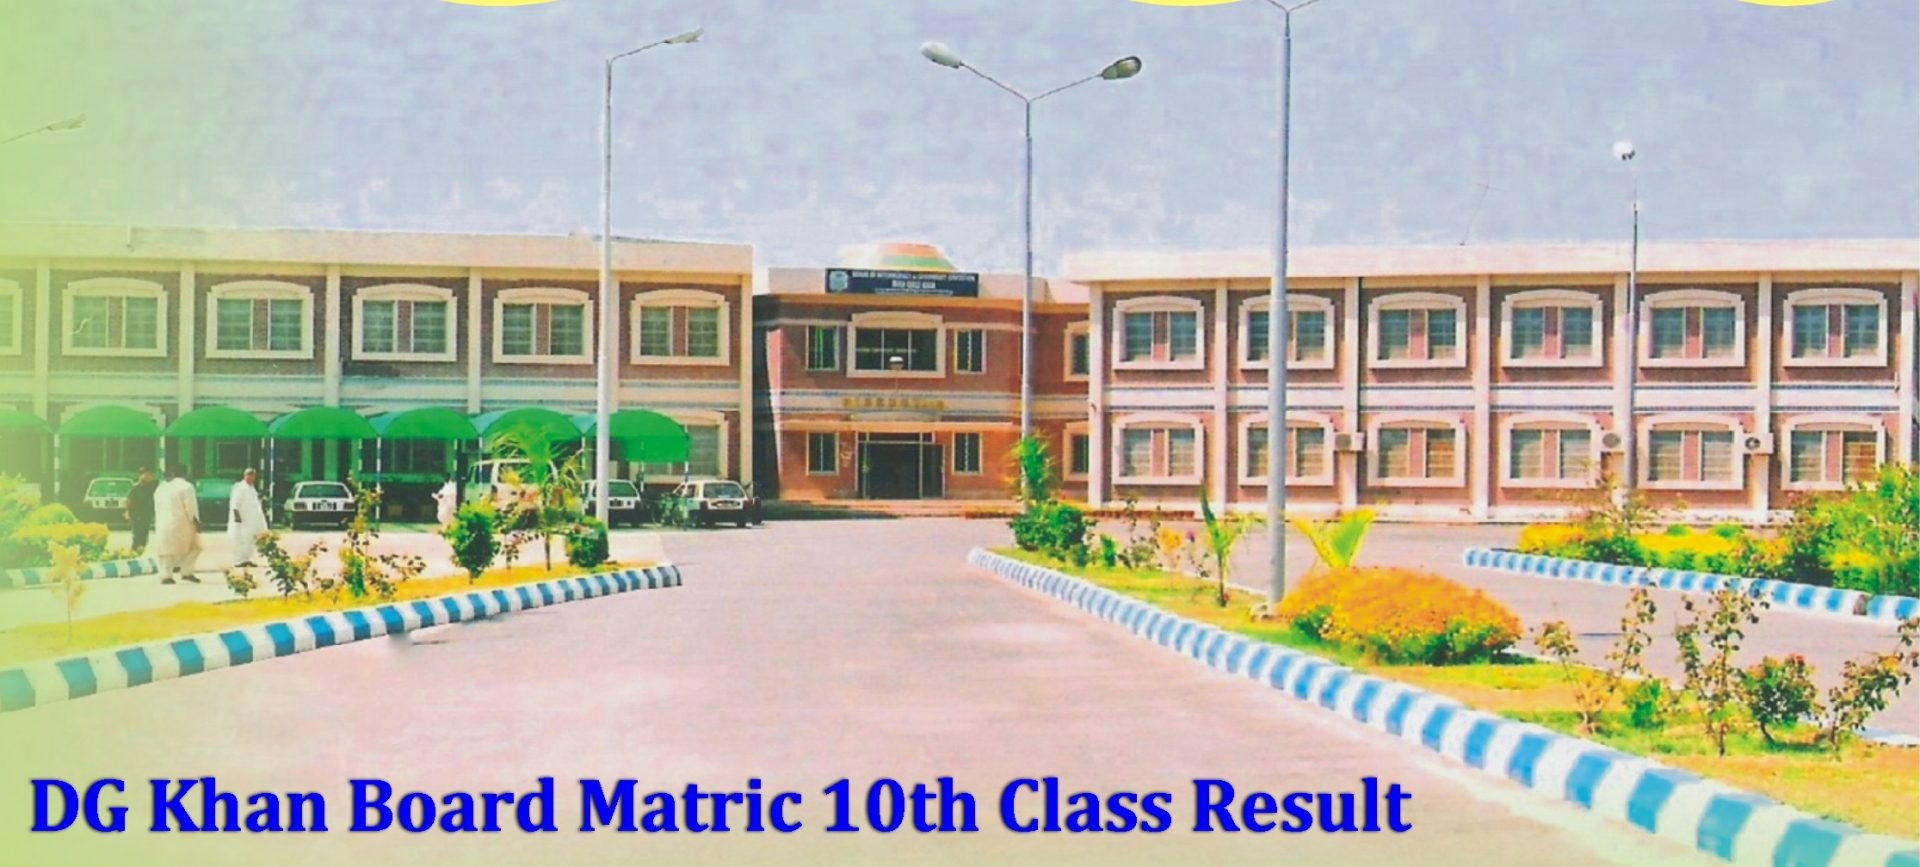 BISE DG Khan Matric Result 2017 Online By Name, Roll No SSC Part 2